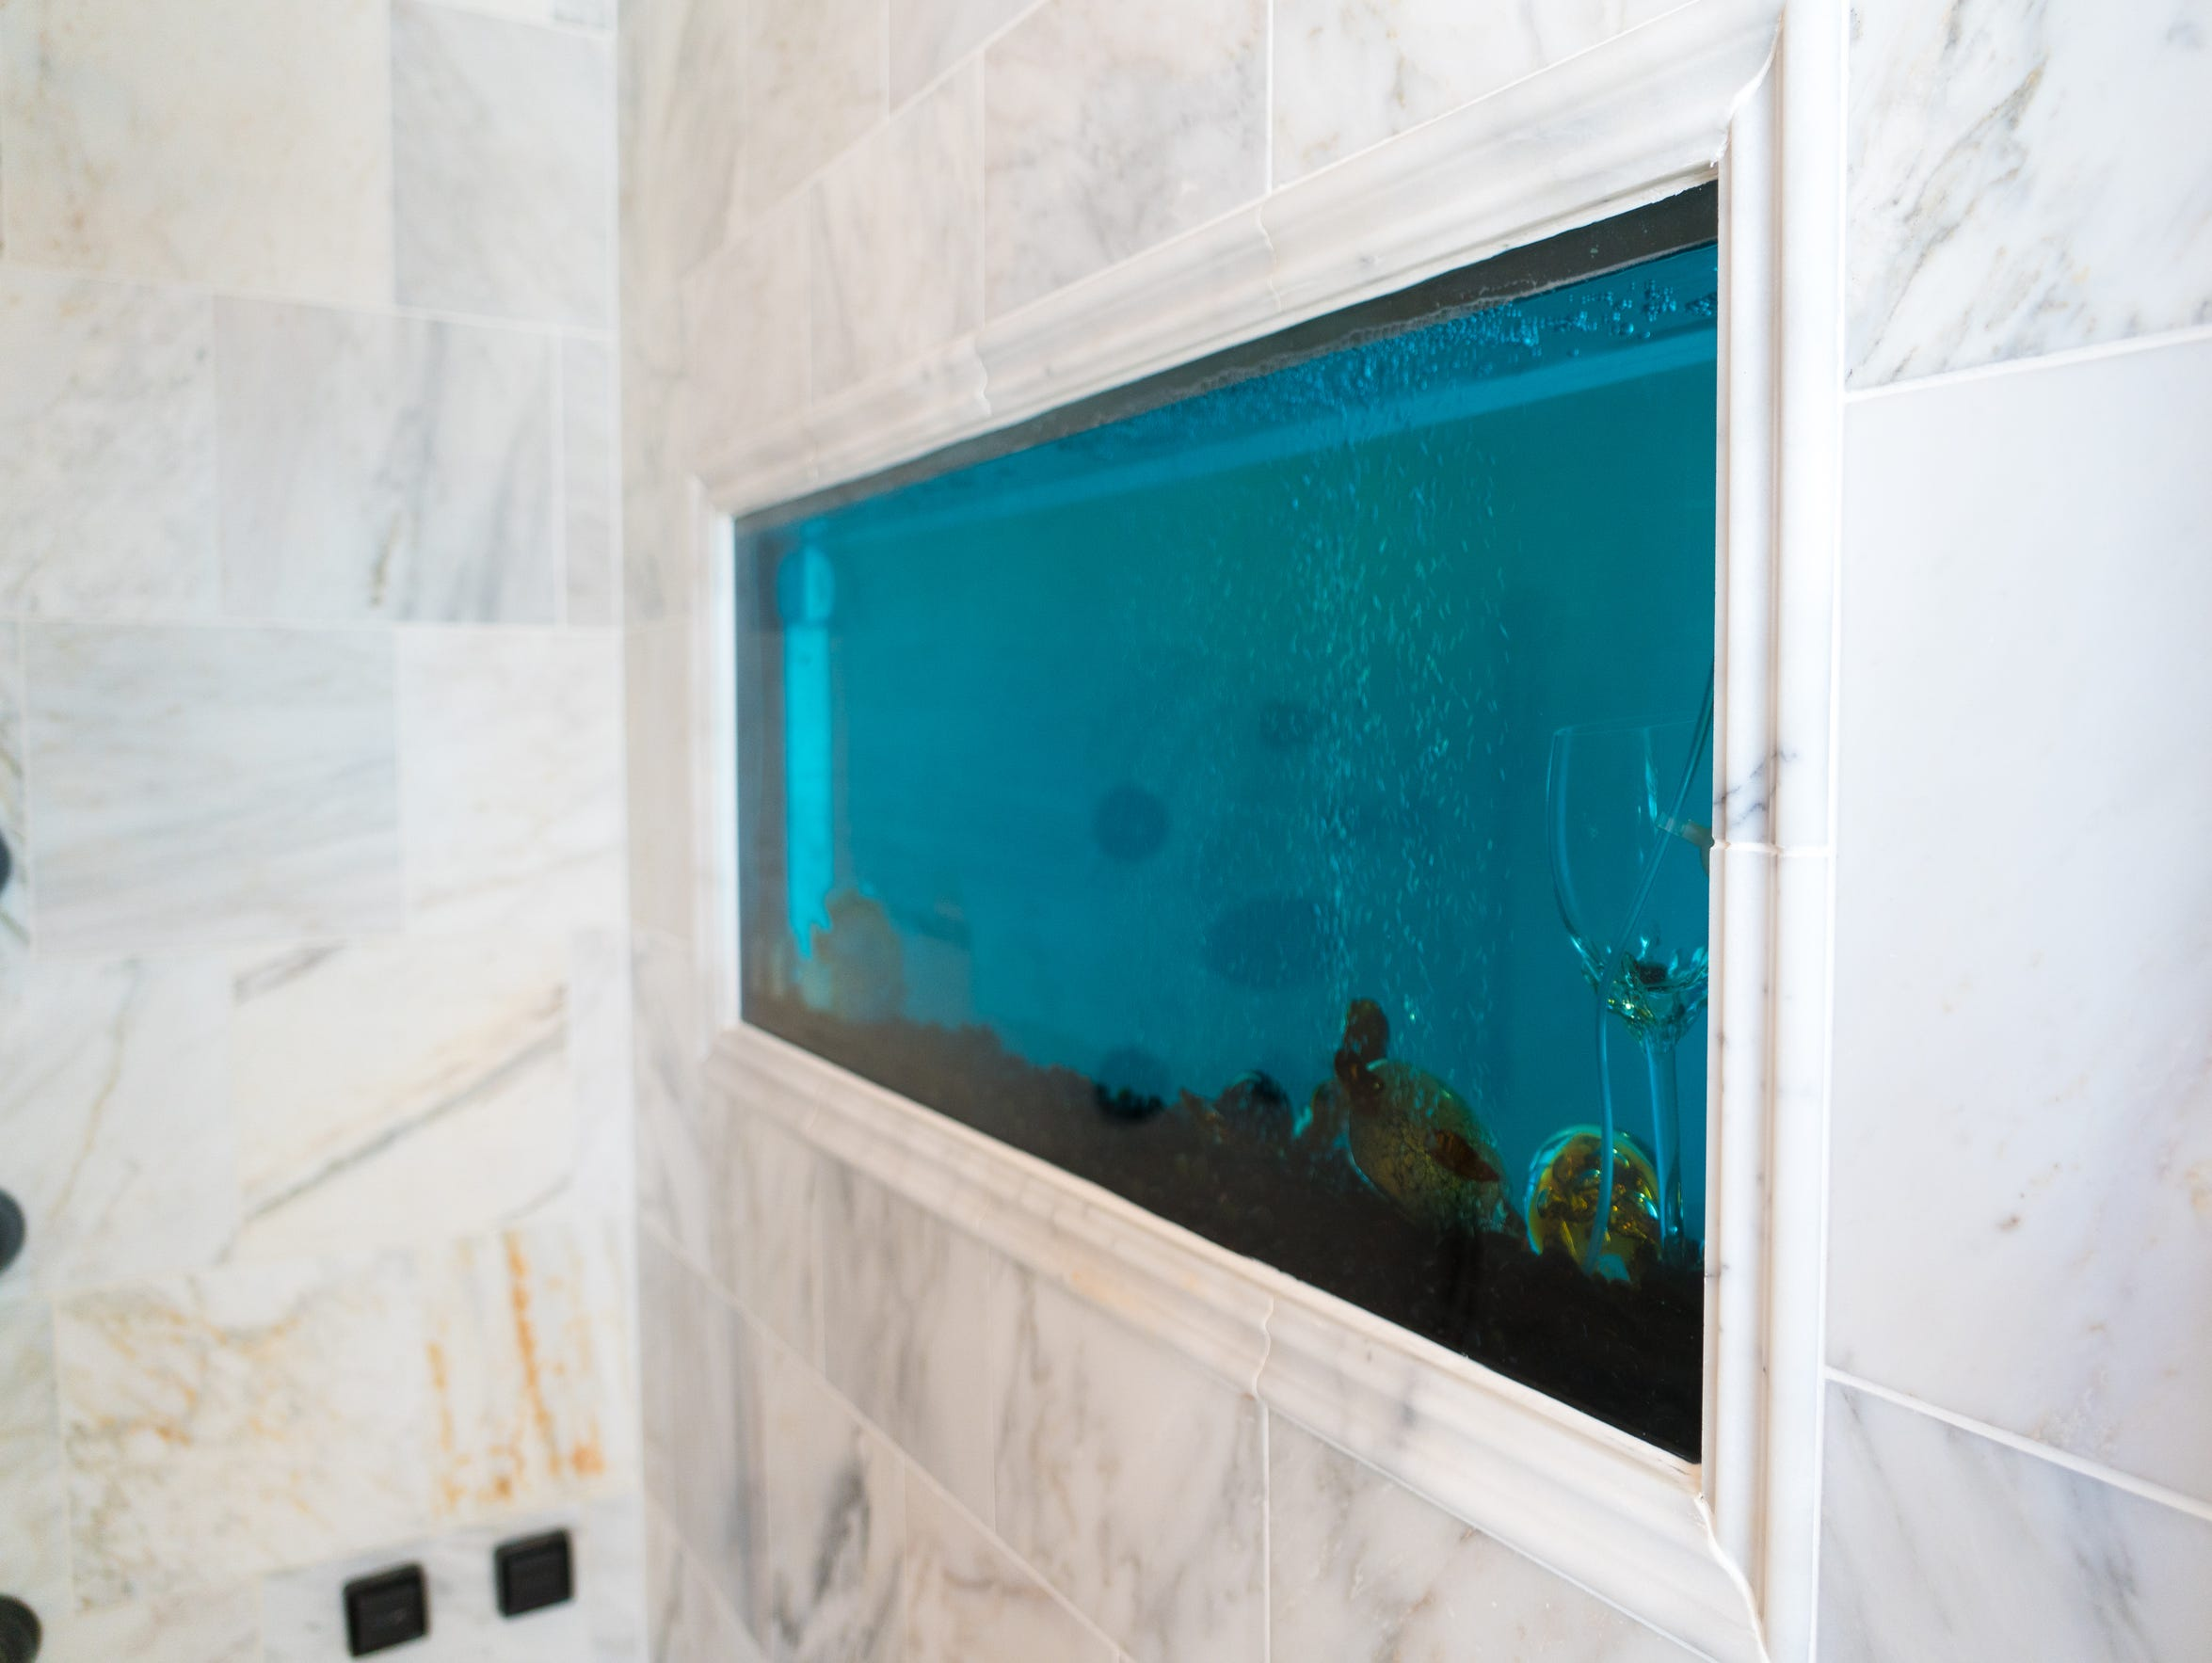 A large aquarium separates the shower from the toilet